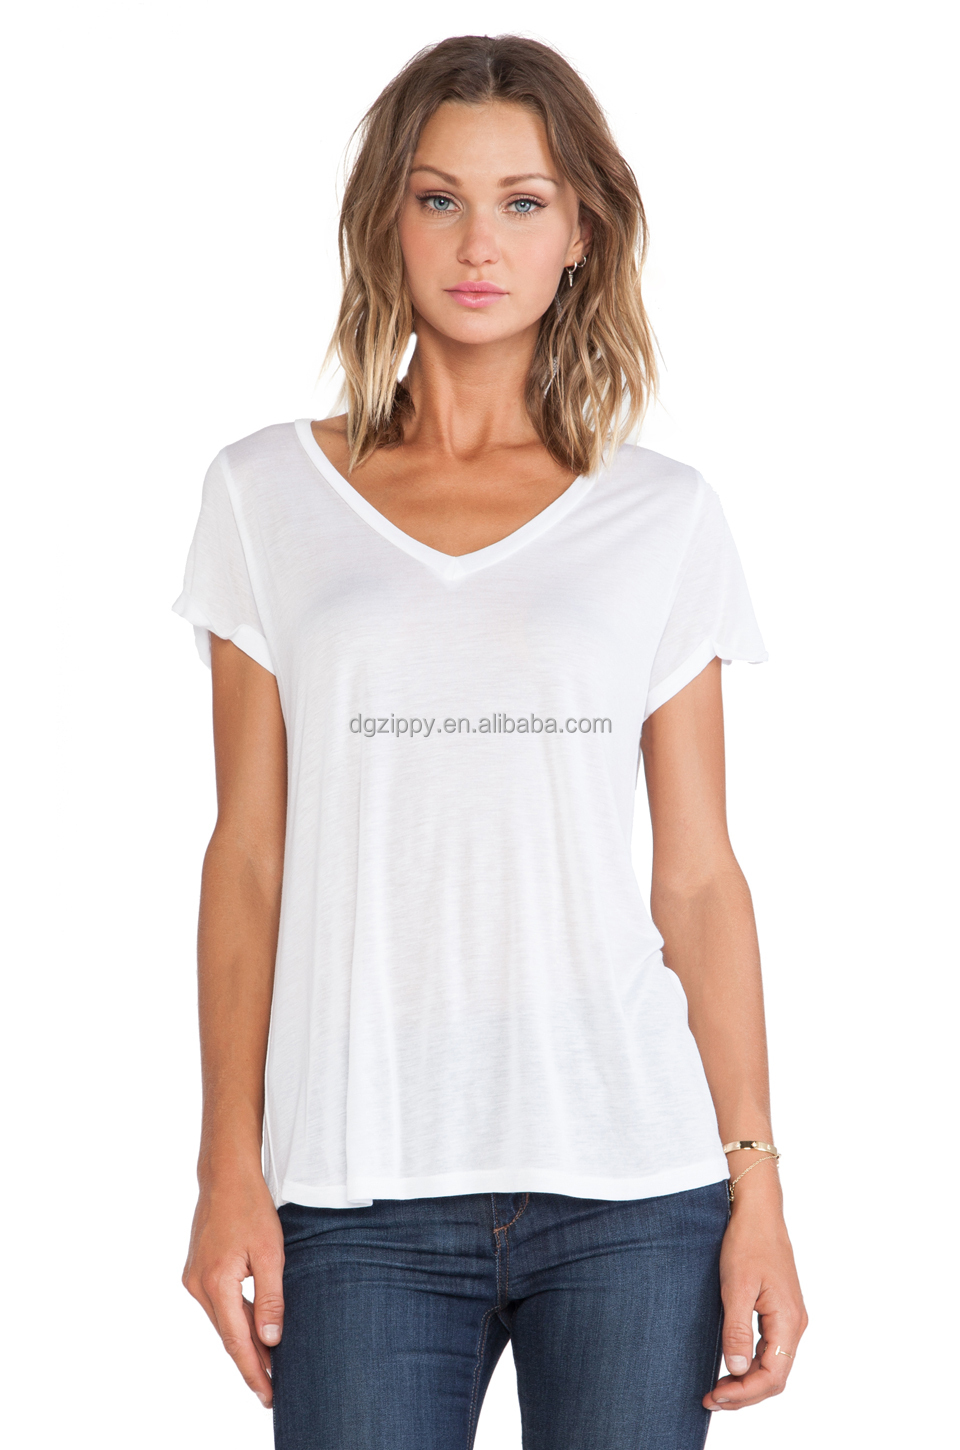 Women t shirt v neckline wholesale blank t shirts with Bulk quality t shirts